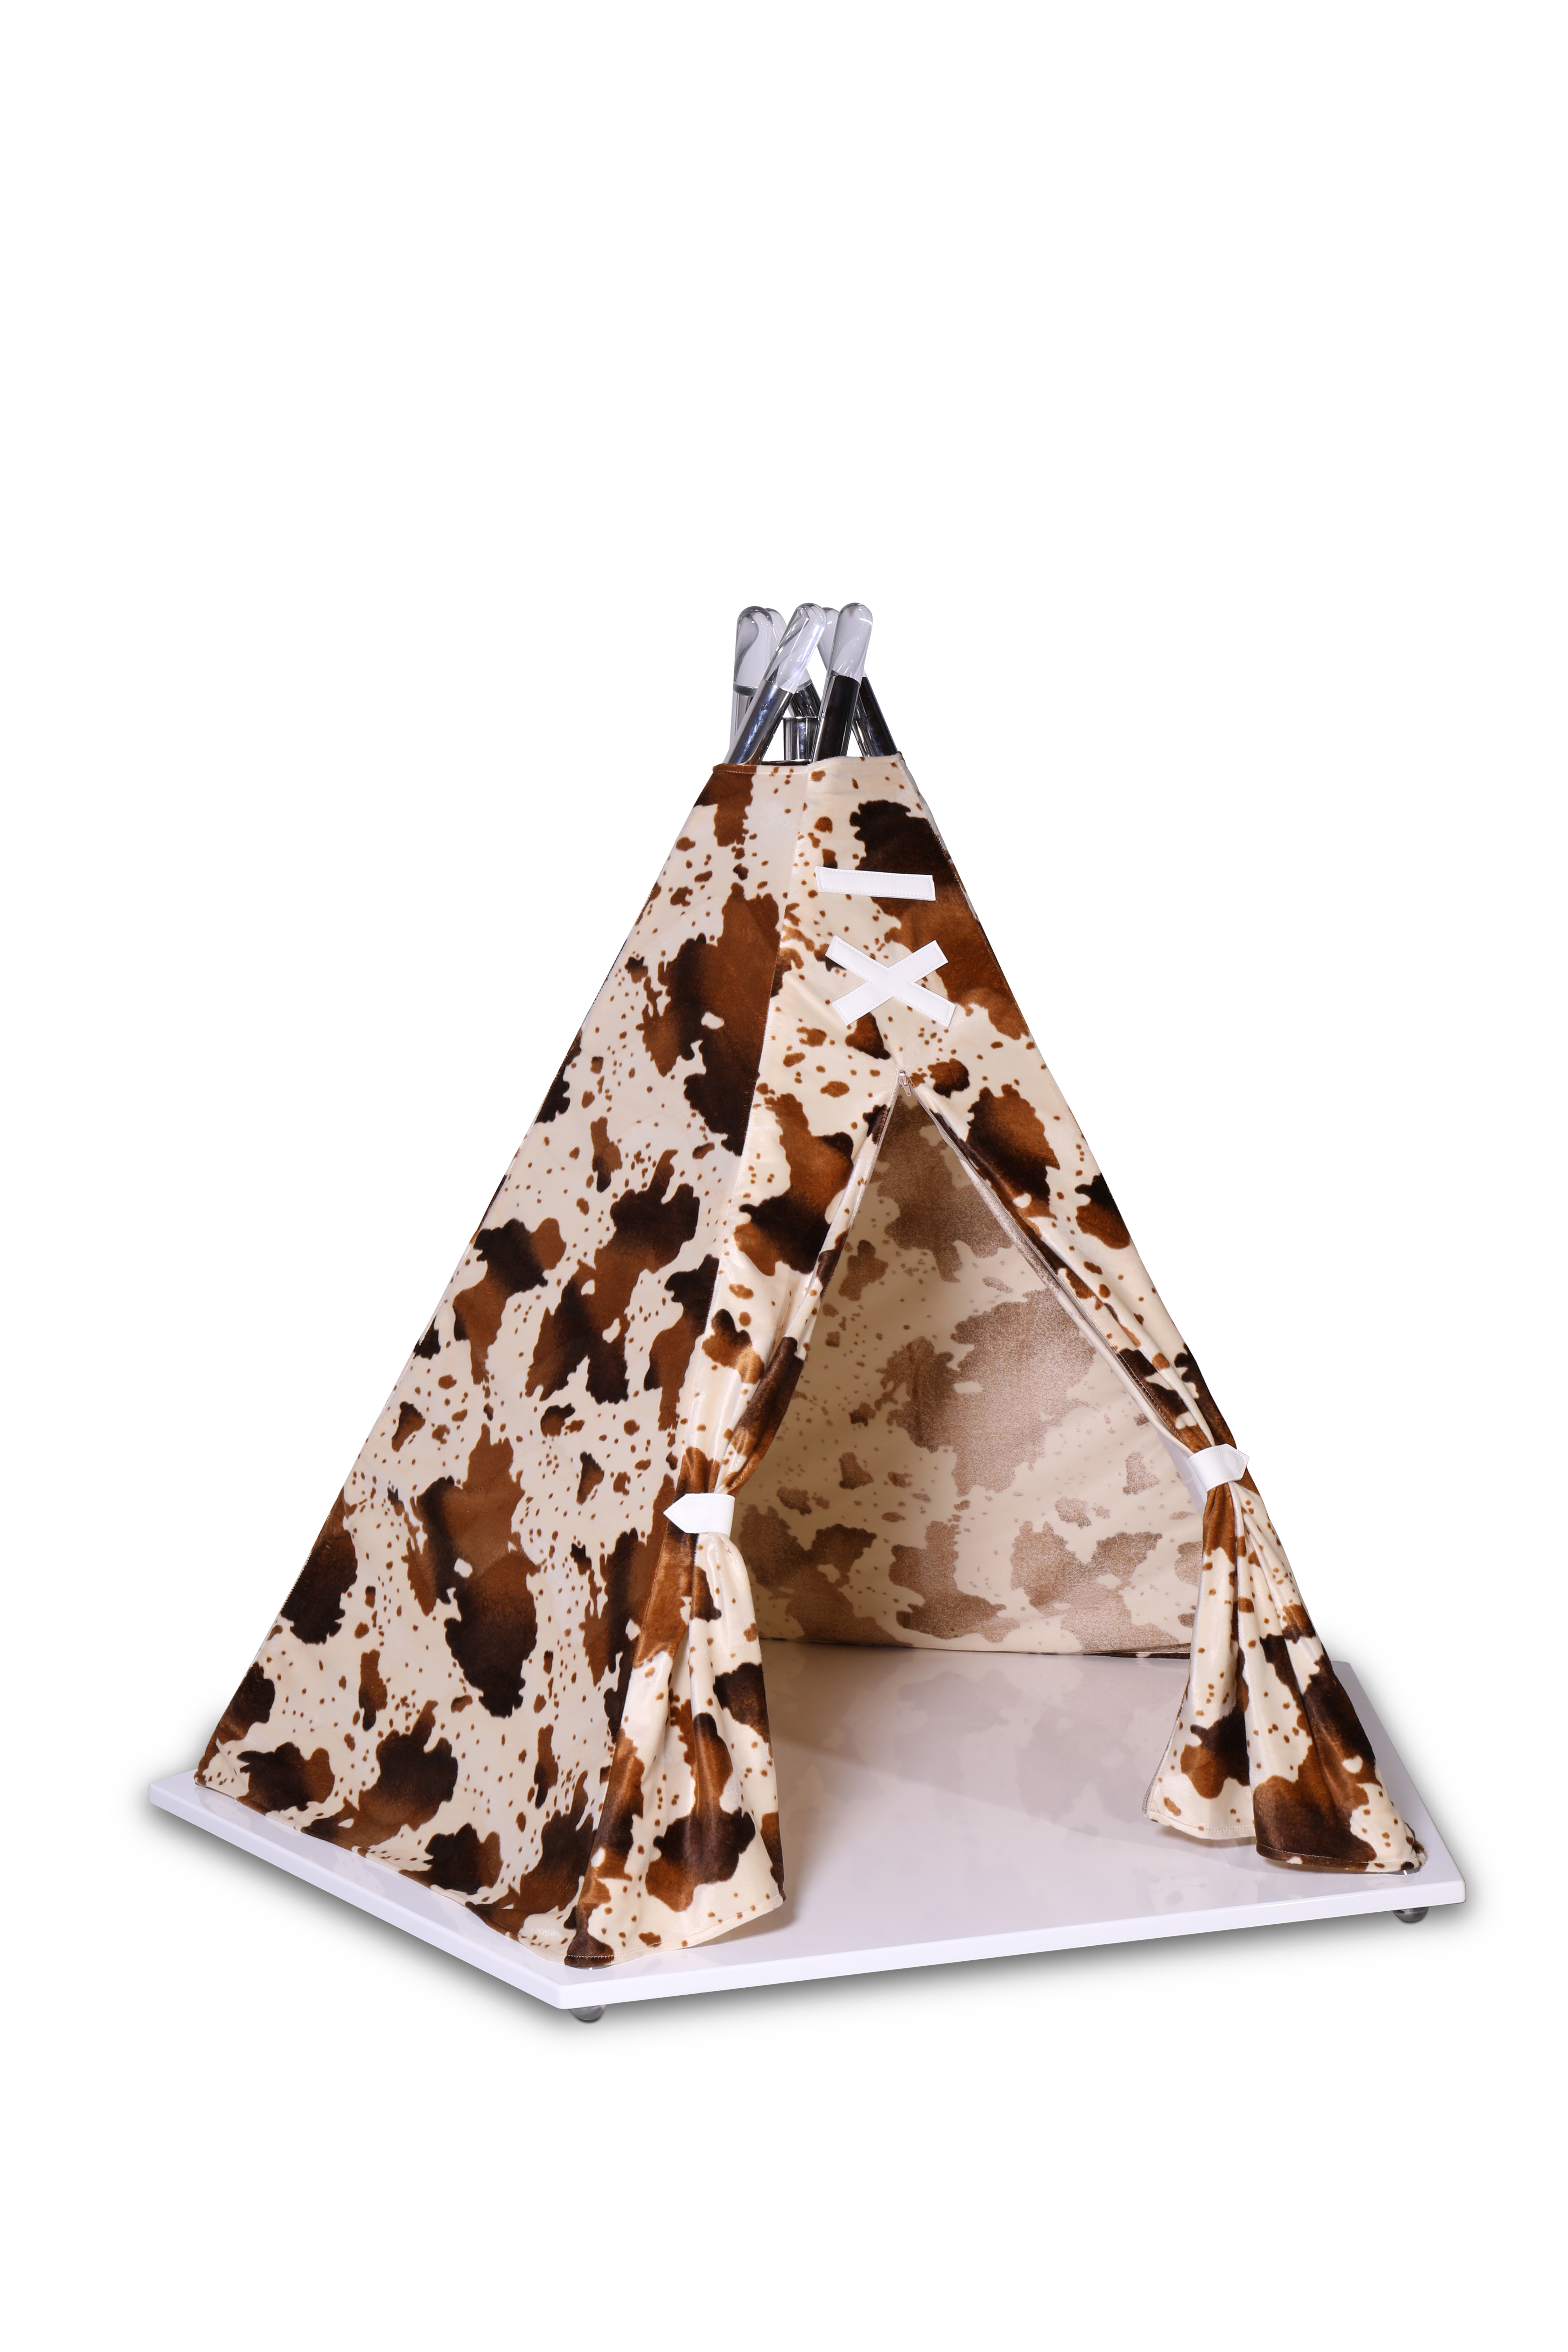 kids playroom decor ideas 7 Kids Playroom Decor Ideas to Improve Your Child's Play Area teepee playground circu magical furniture 5